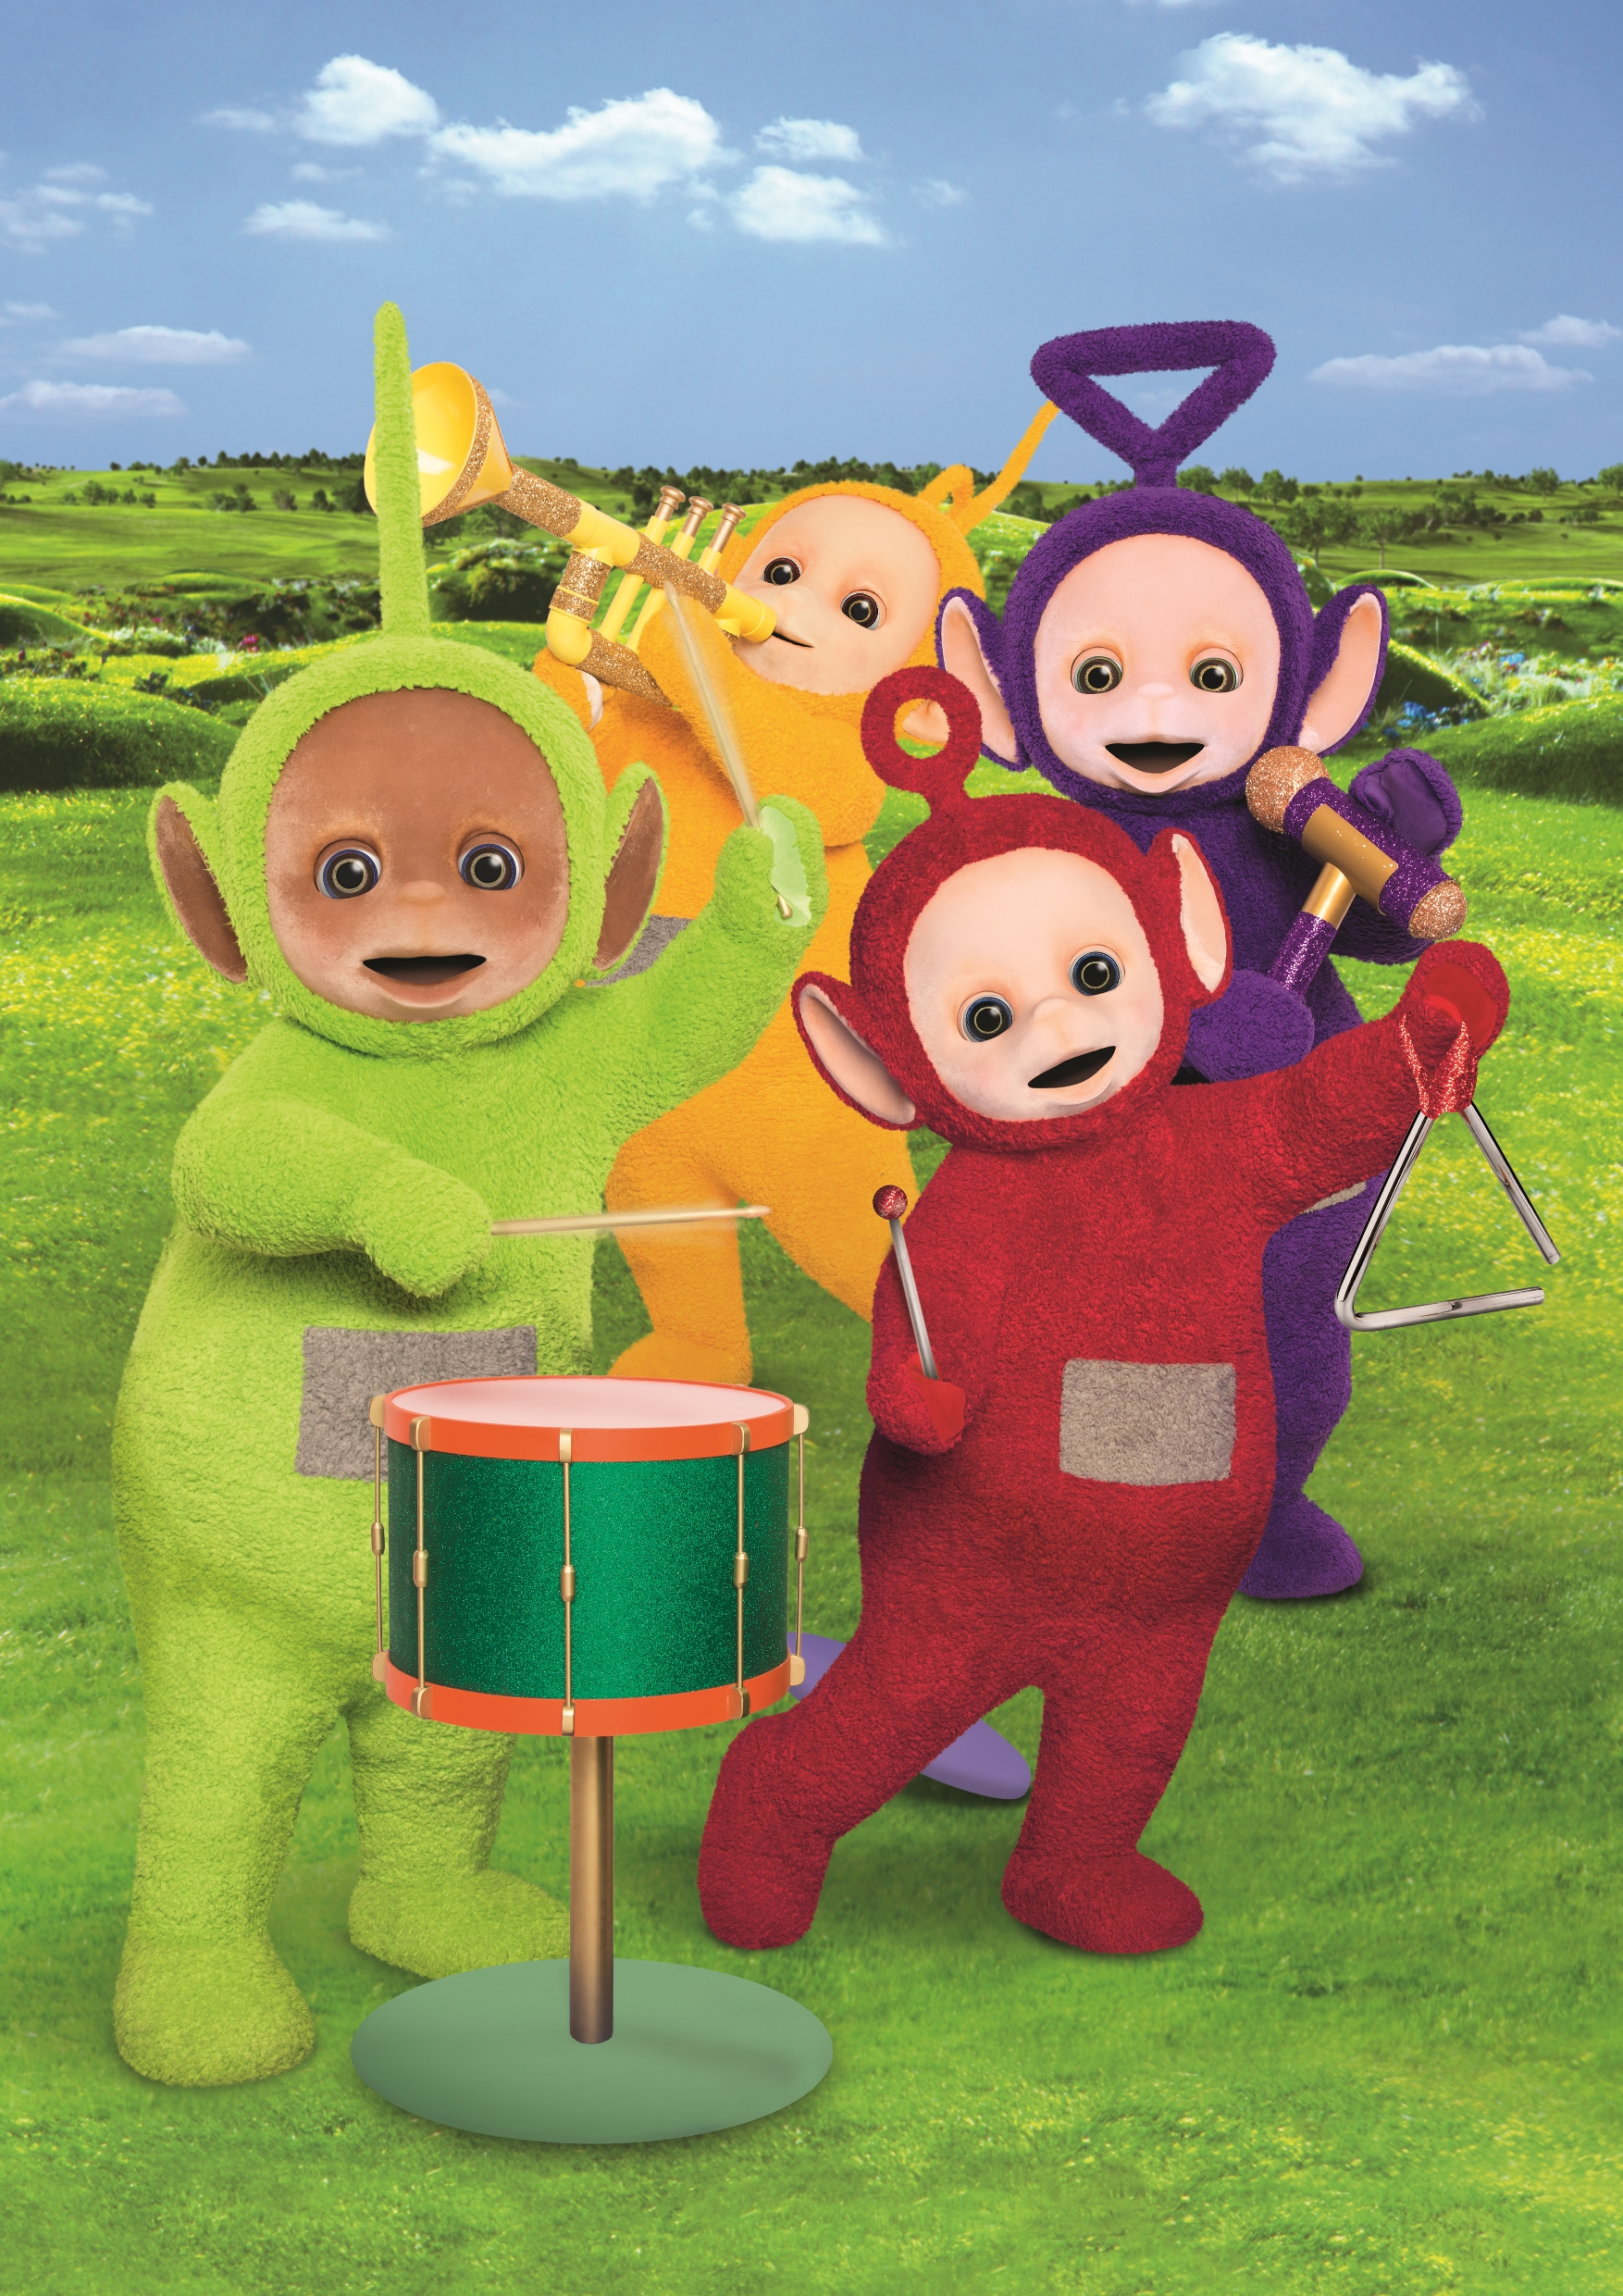 Teletubbies Big Band Live Show arrives at Alton Towers Resort in 2019